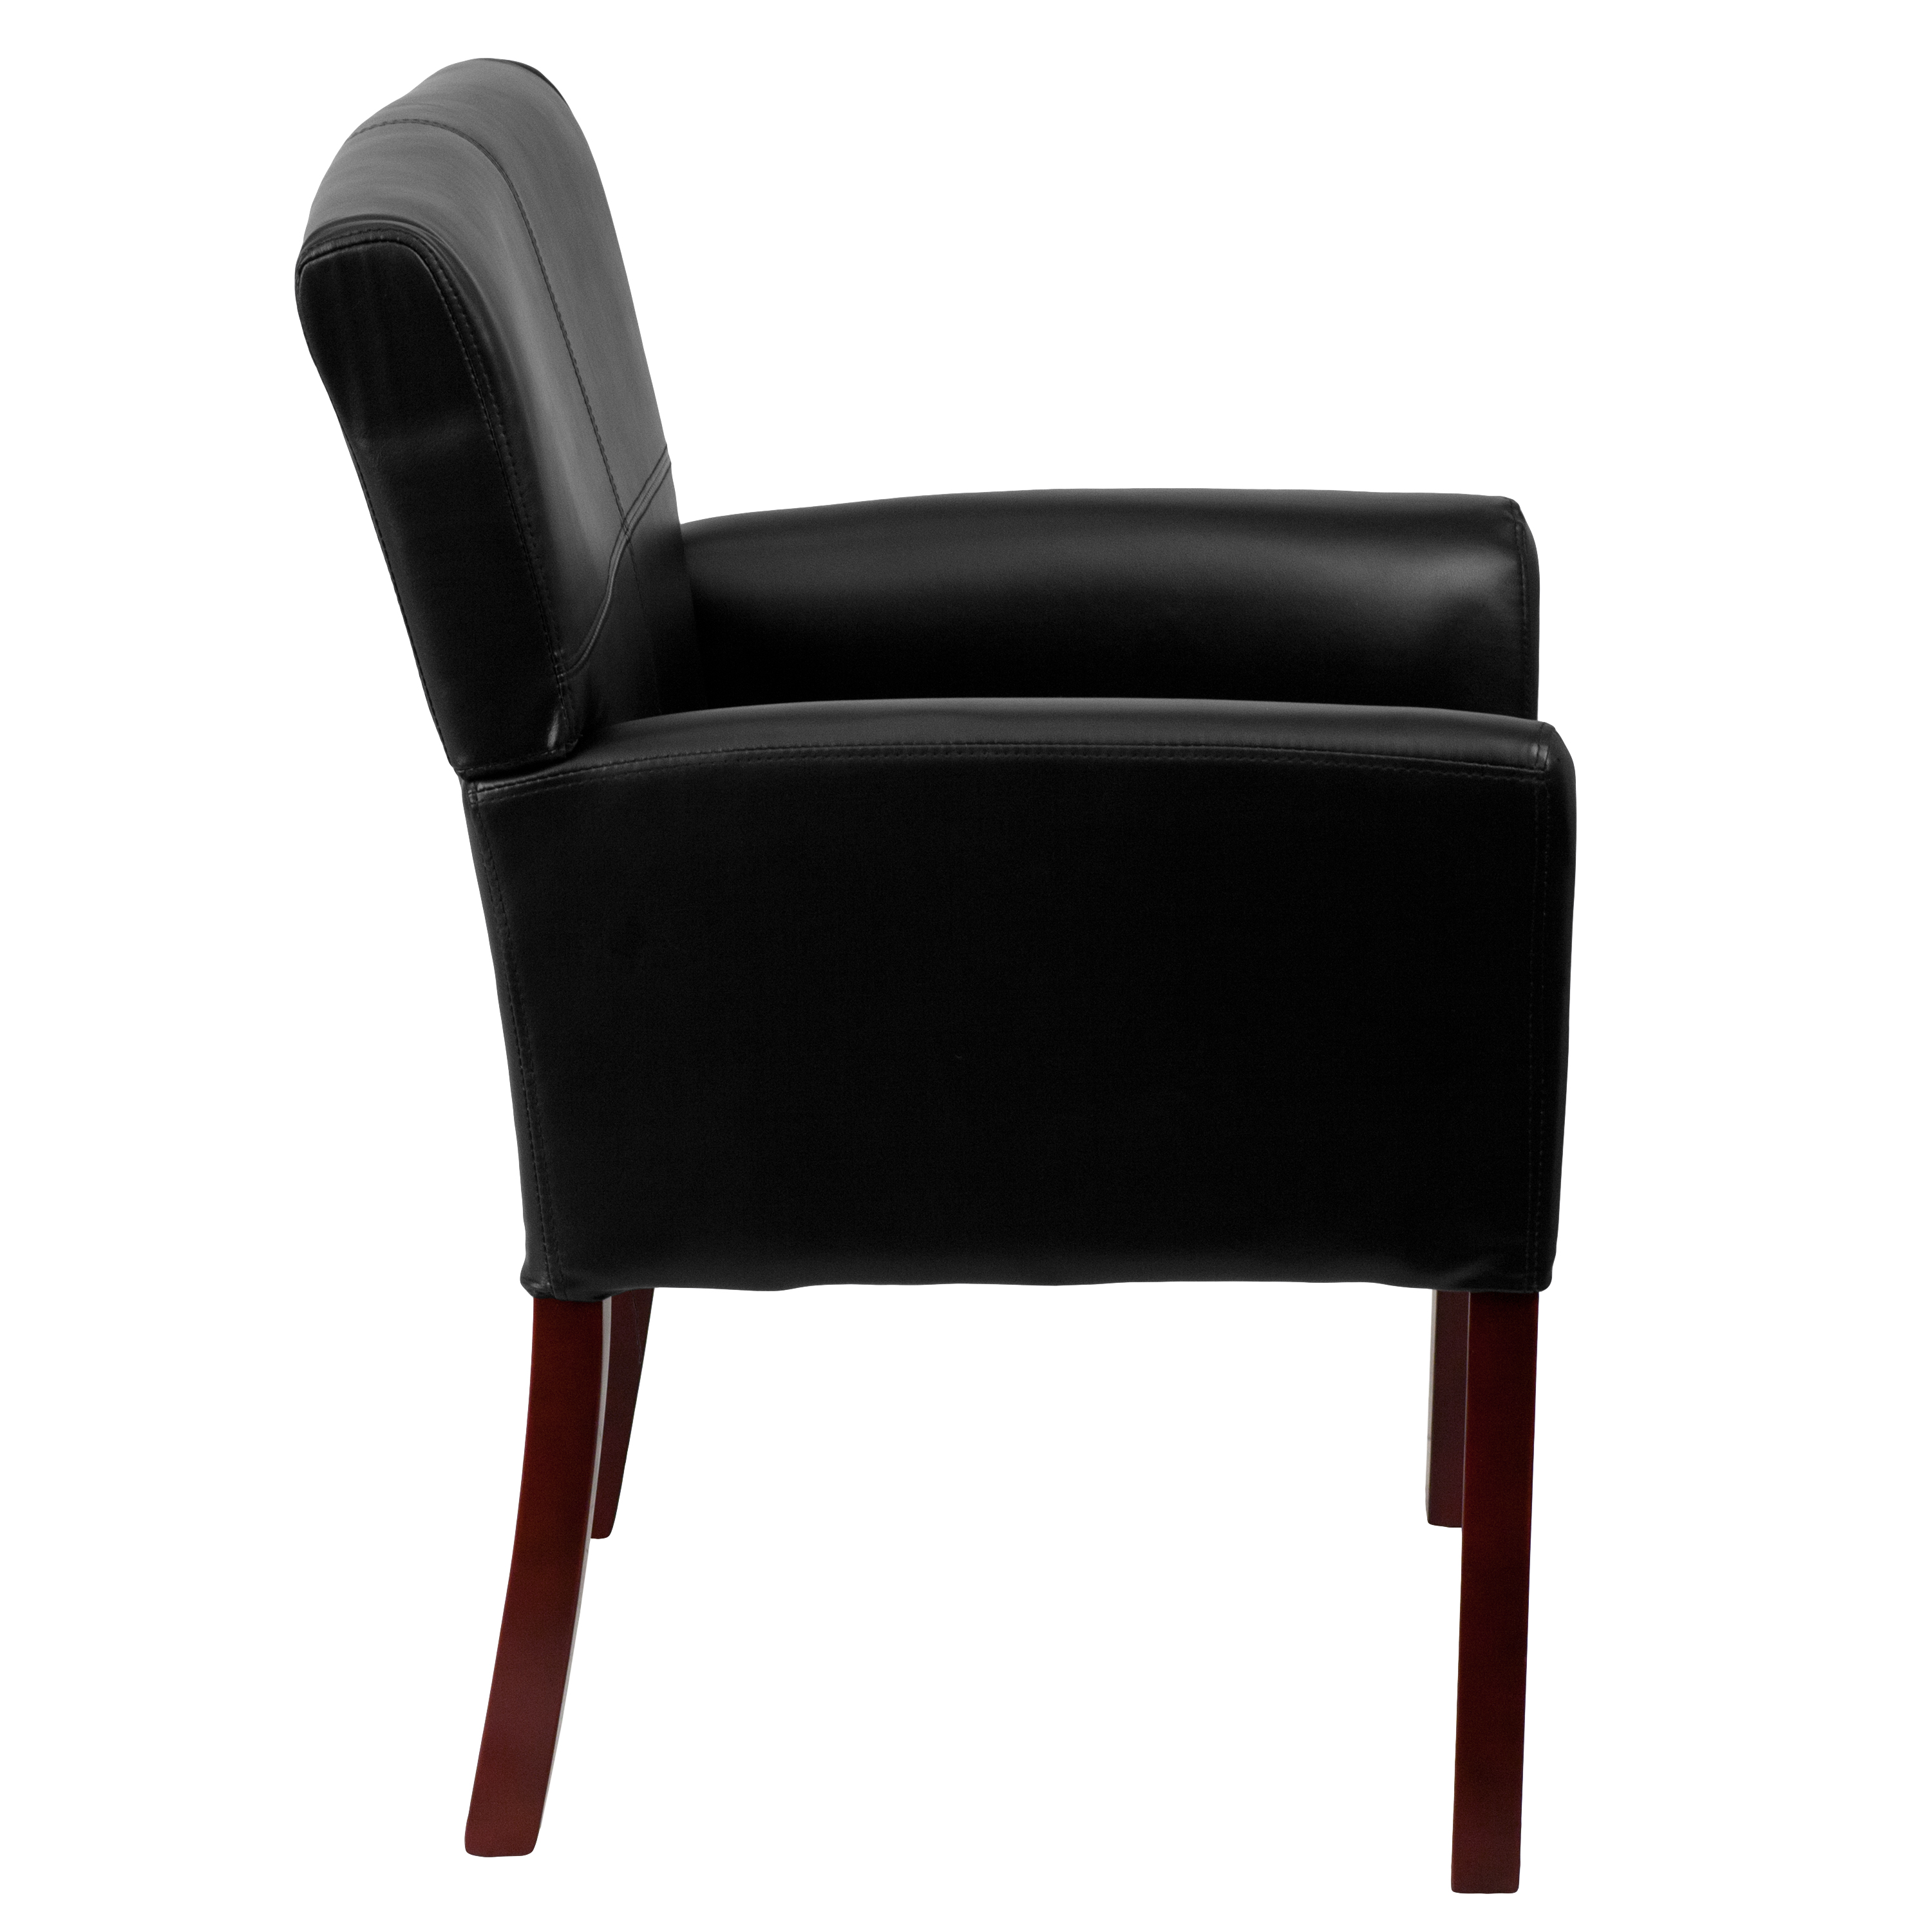 Cool Details About Leather Executive Side Reception Chair With Mahogany Legs Pdpeps Interior Chair Design Pdpepsorg